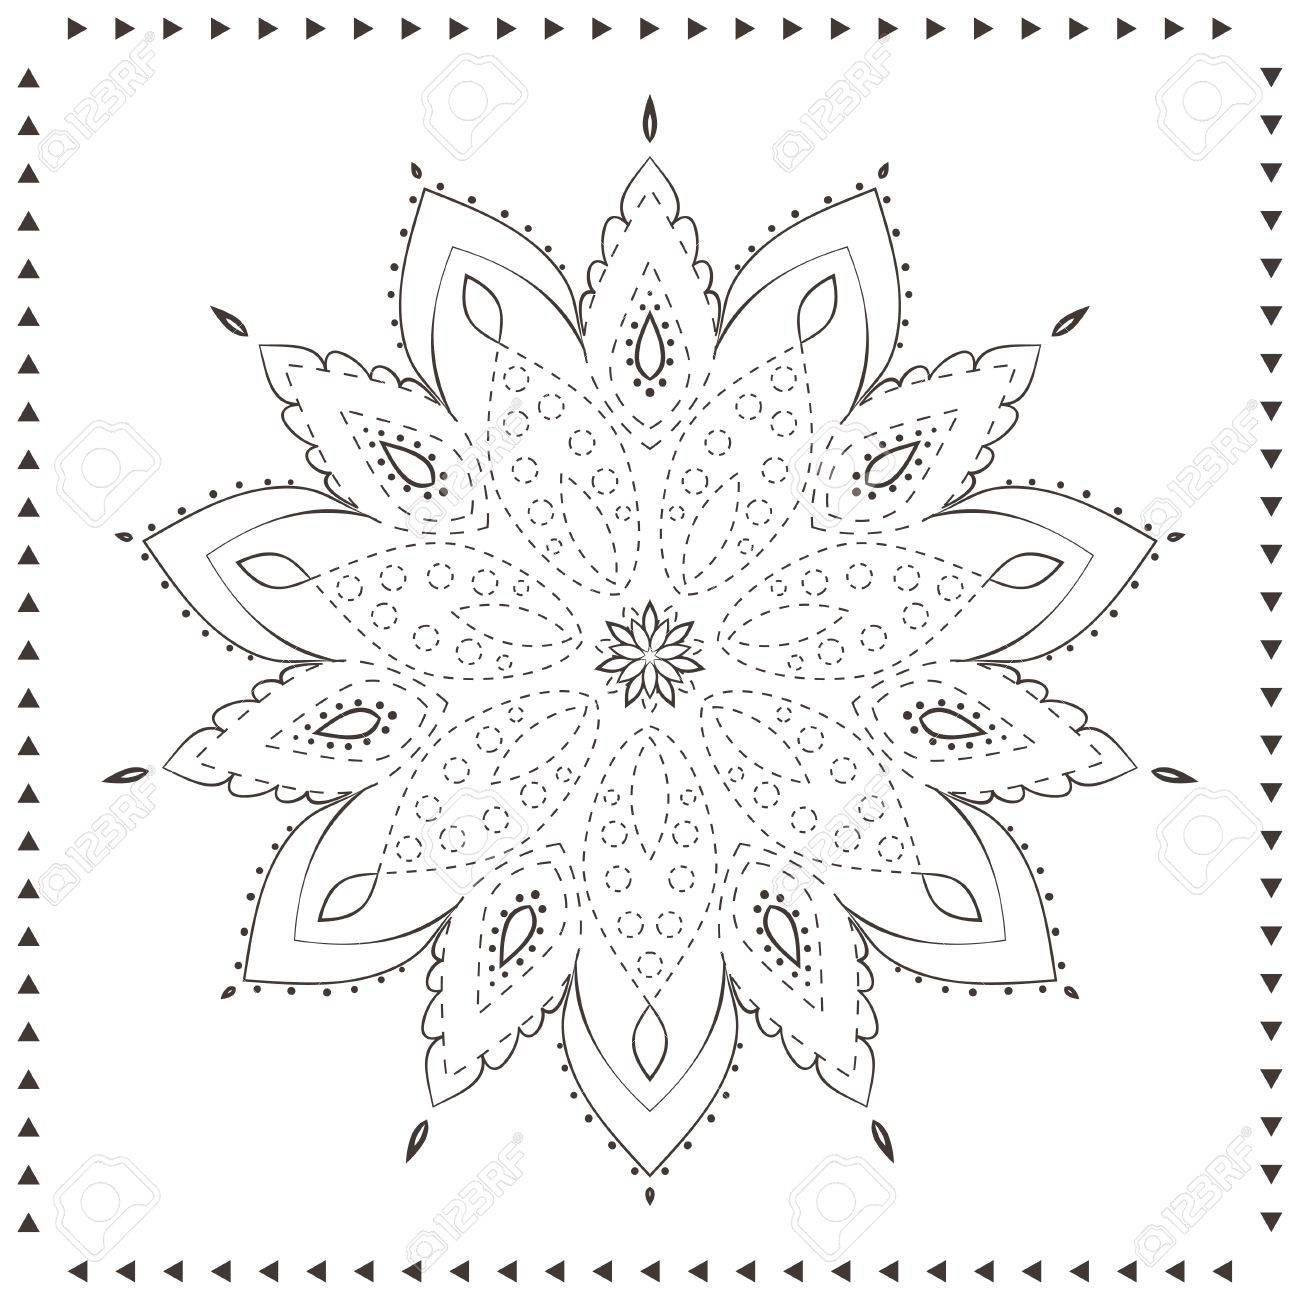 Coloriage Anniversaire Mandala.Ornement Belle Carte Avec Mandala Coloriage Modele Pointillees